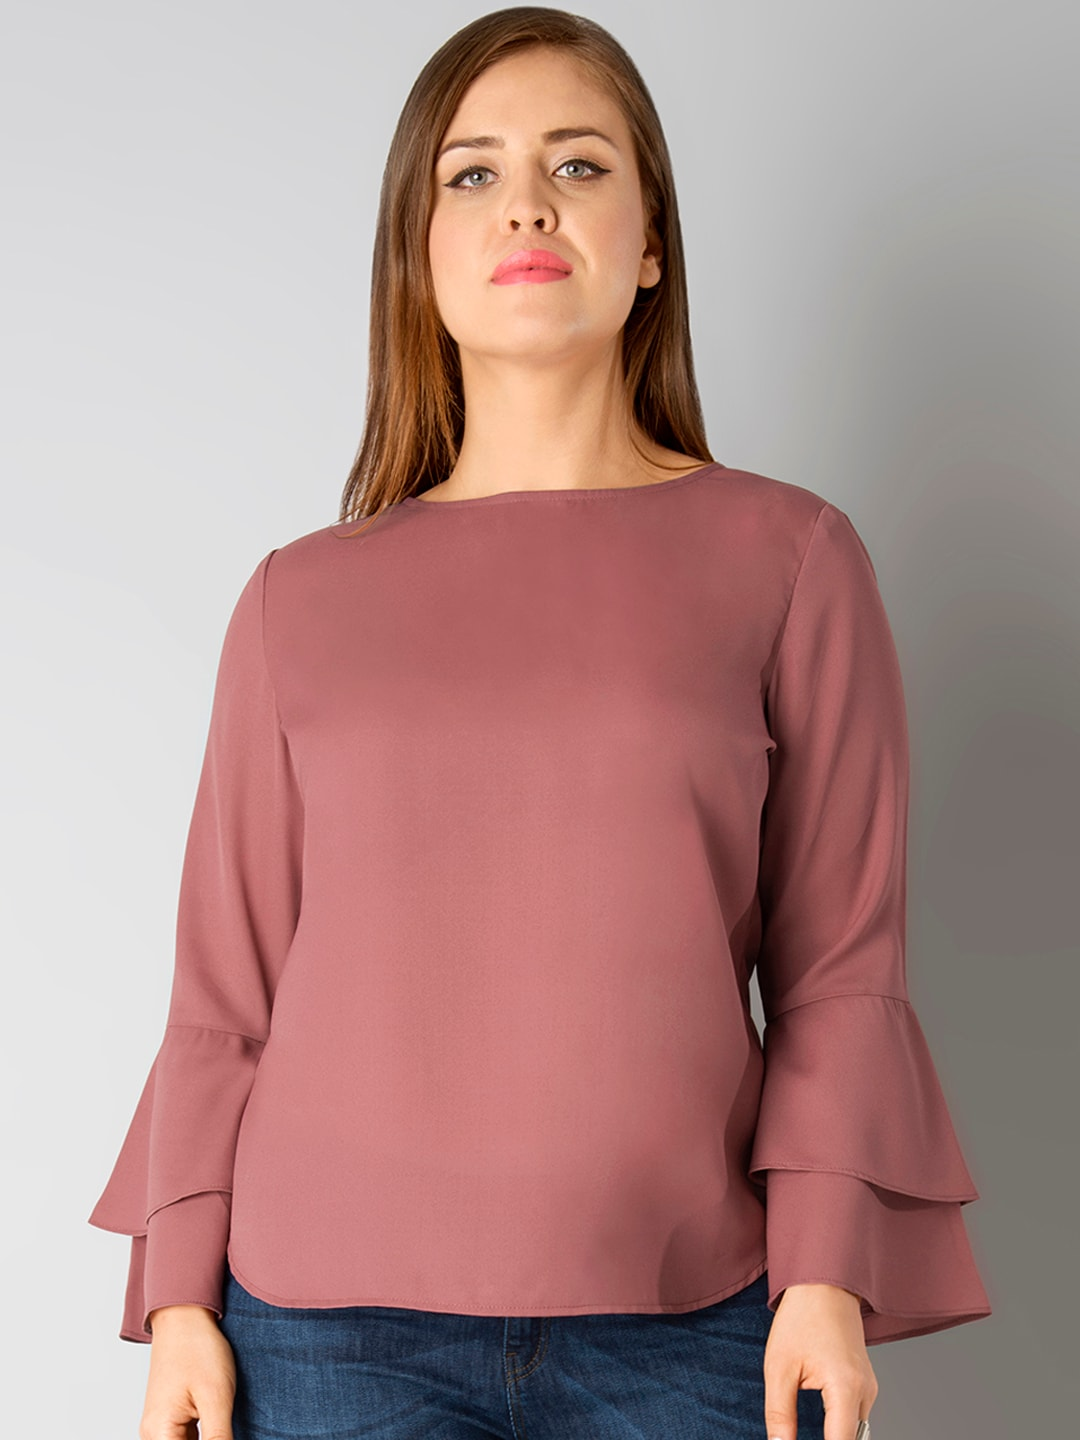 08afd4068329e7 Faballey Mustard Tops - Buy Faballey Mustard Tops online in India